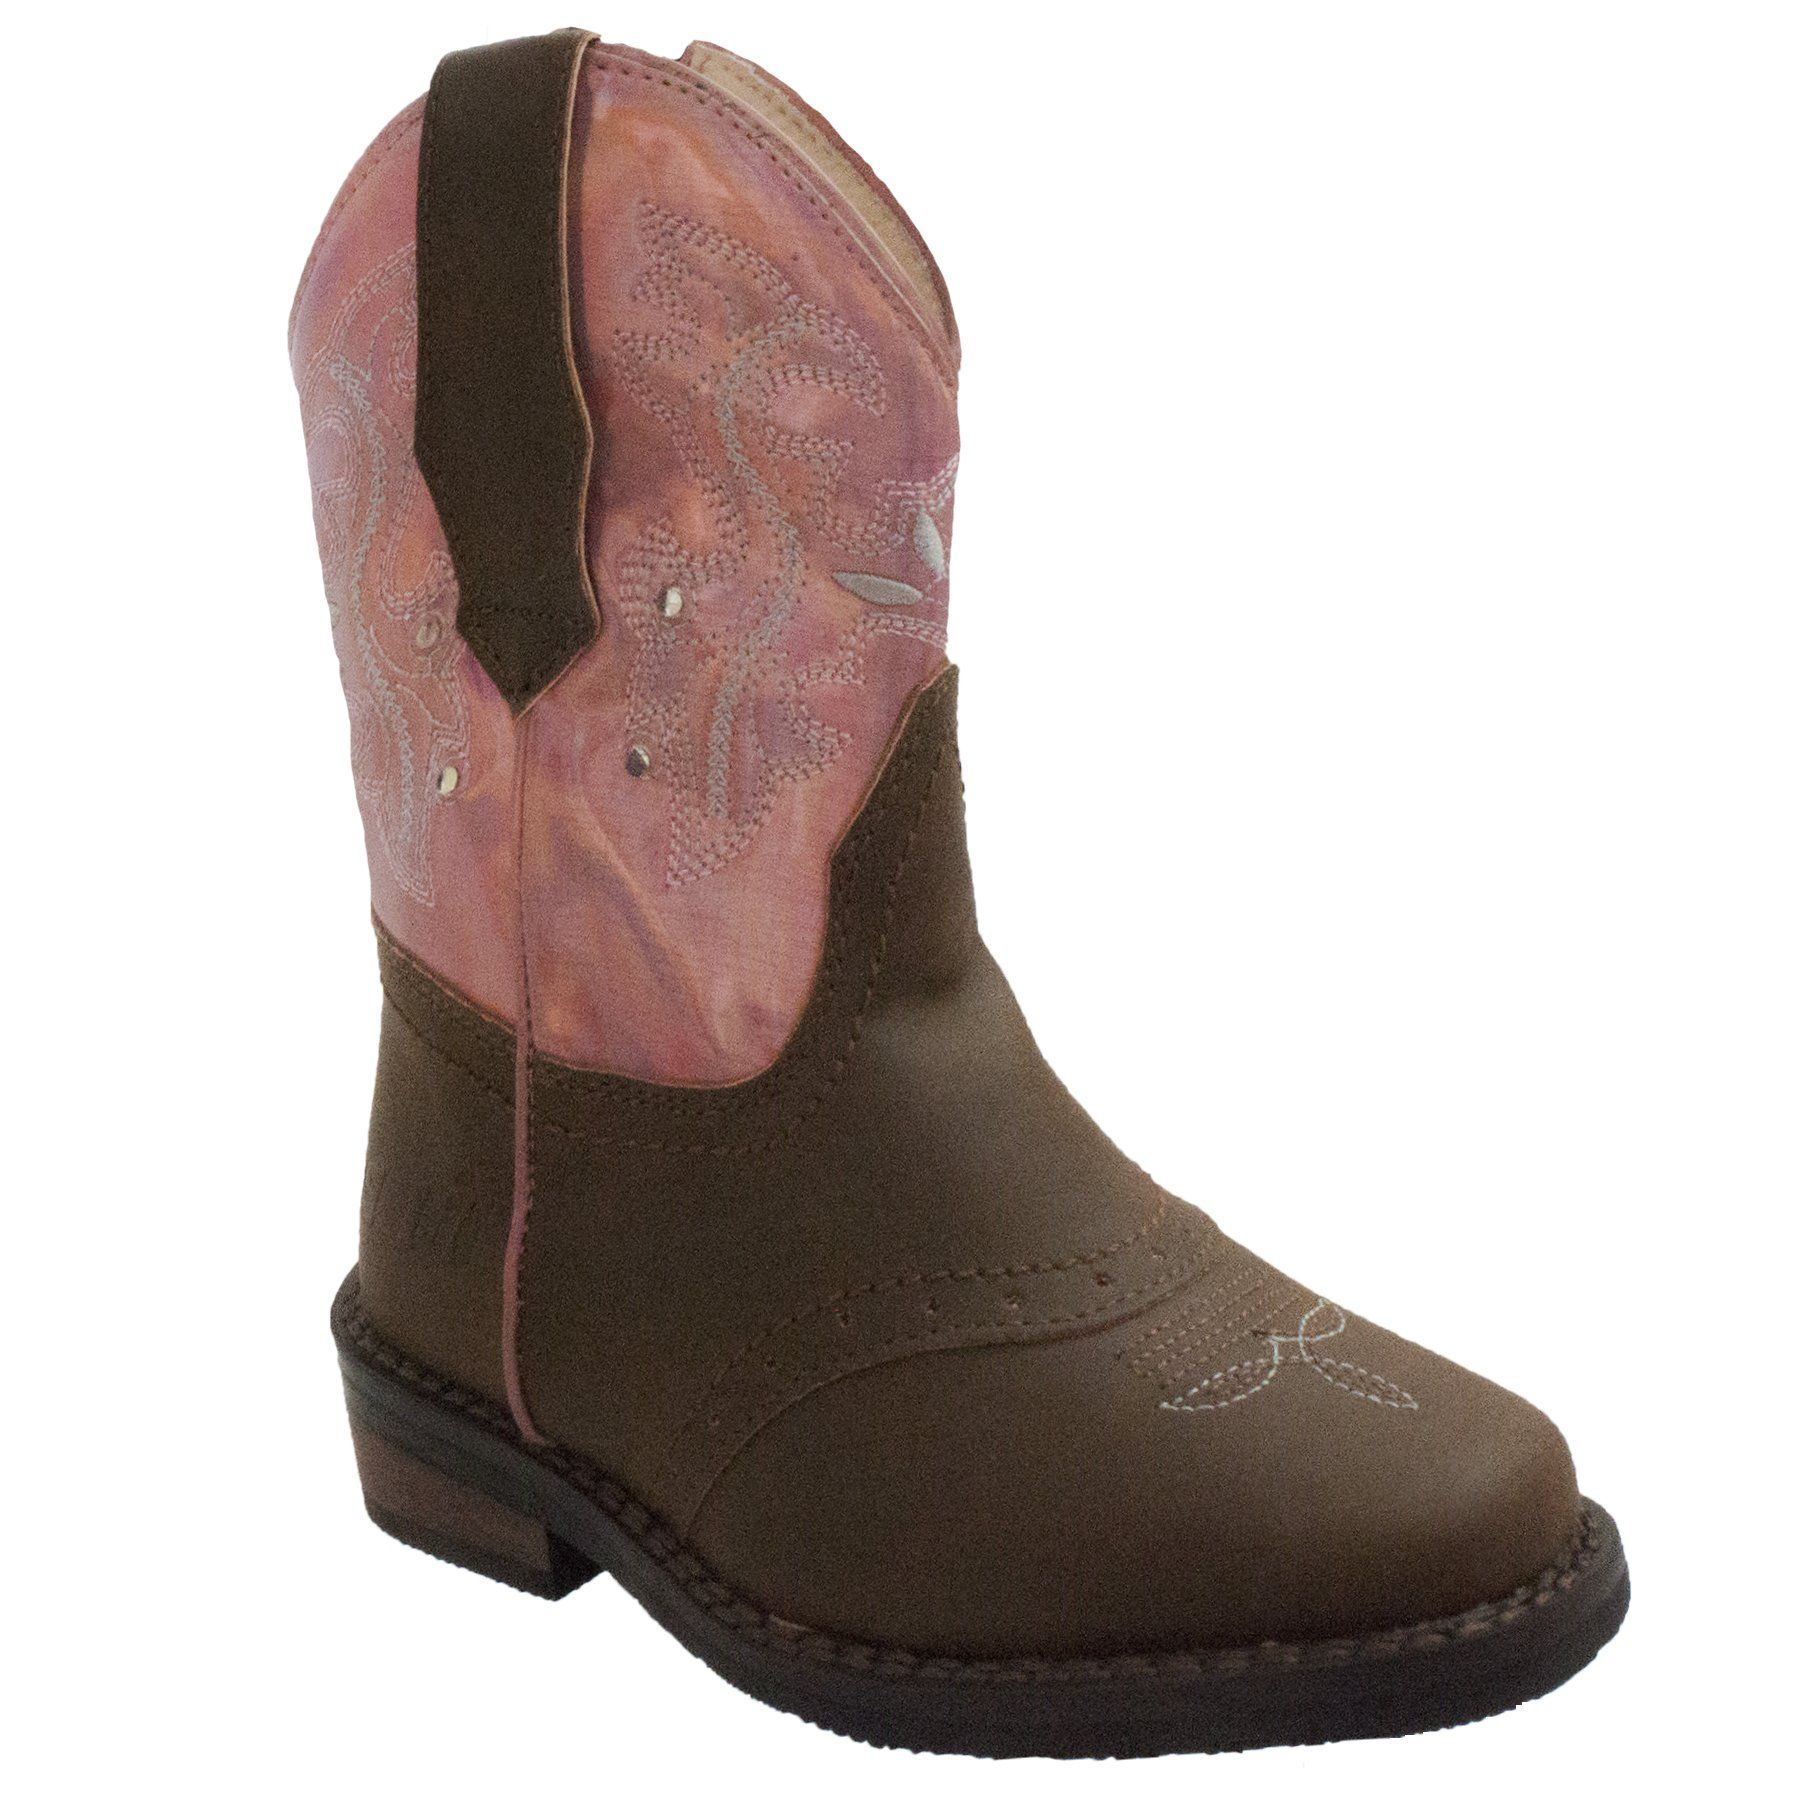 Children's Boots - Toddler's Western Pink & Brown Light Up Boots